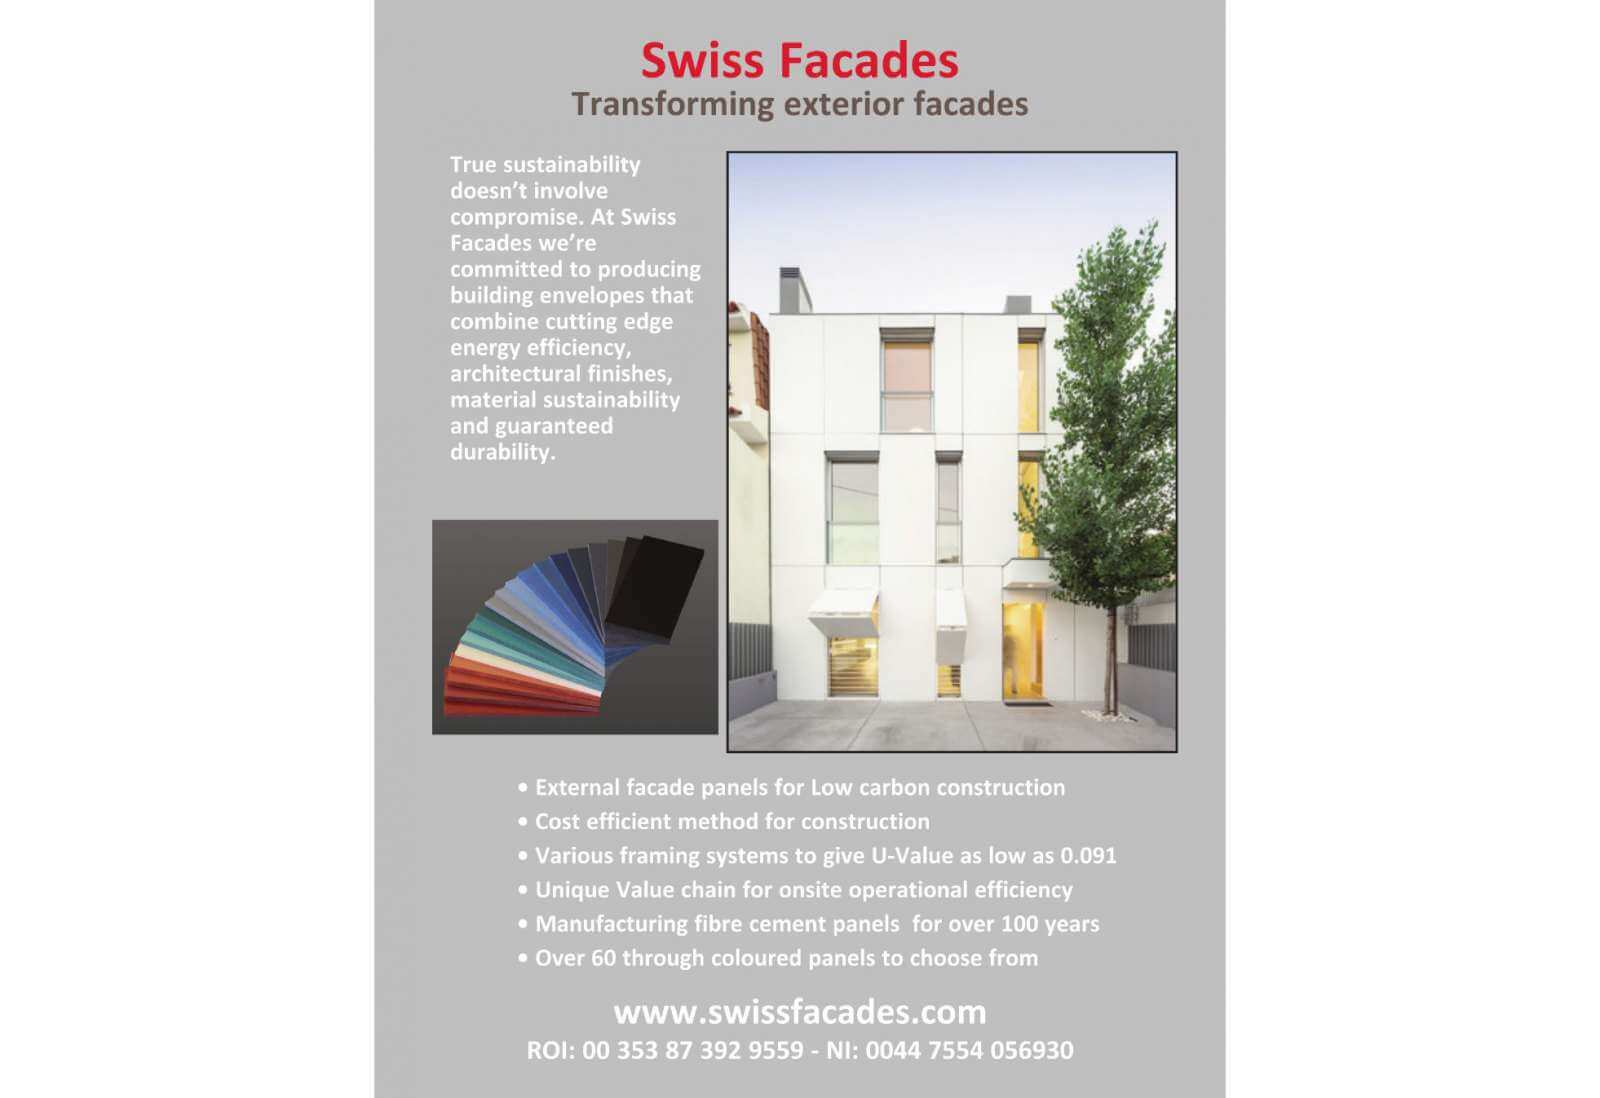 perspective-jul-aug-2014-2 - cladding by swiss facades